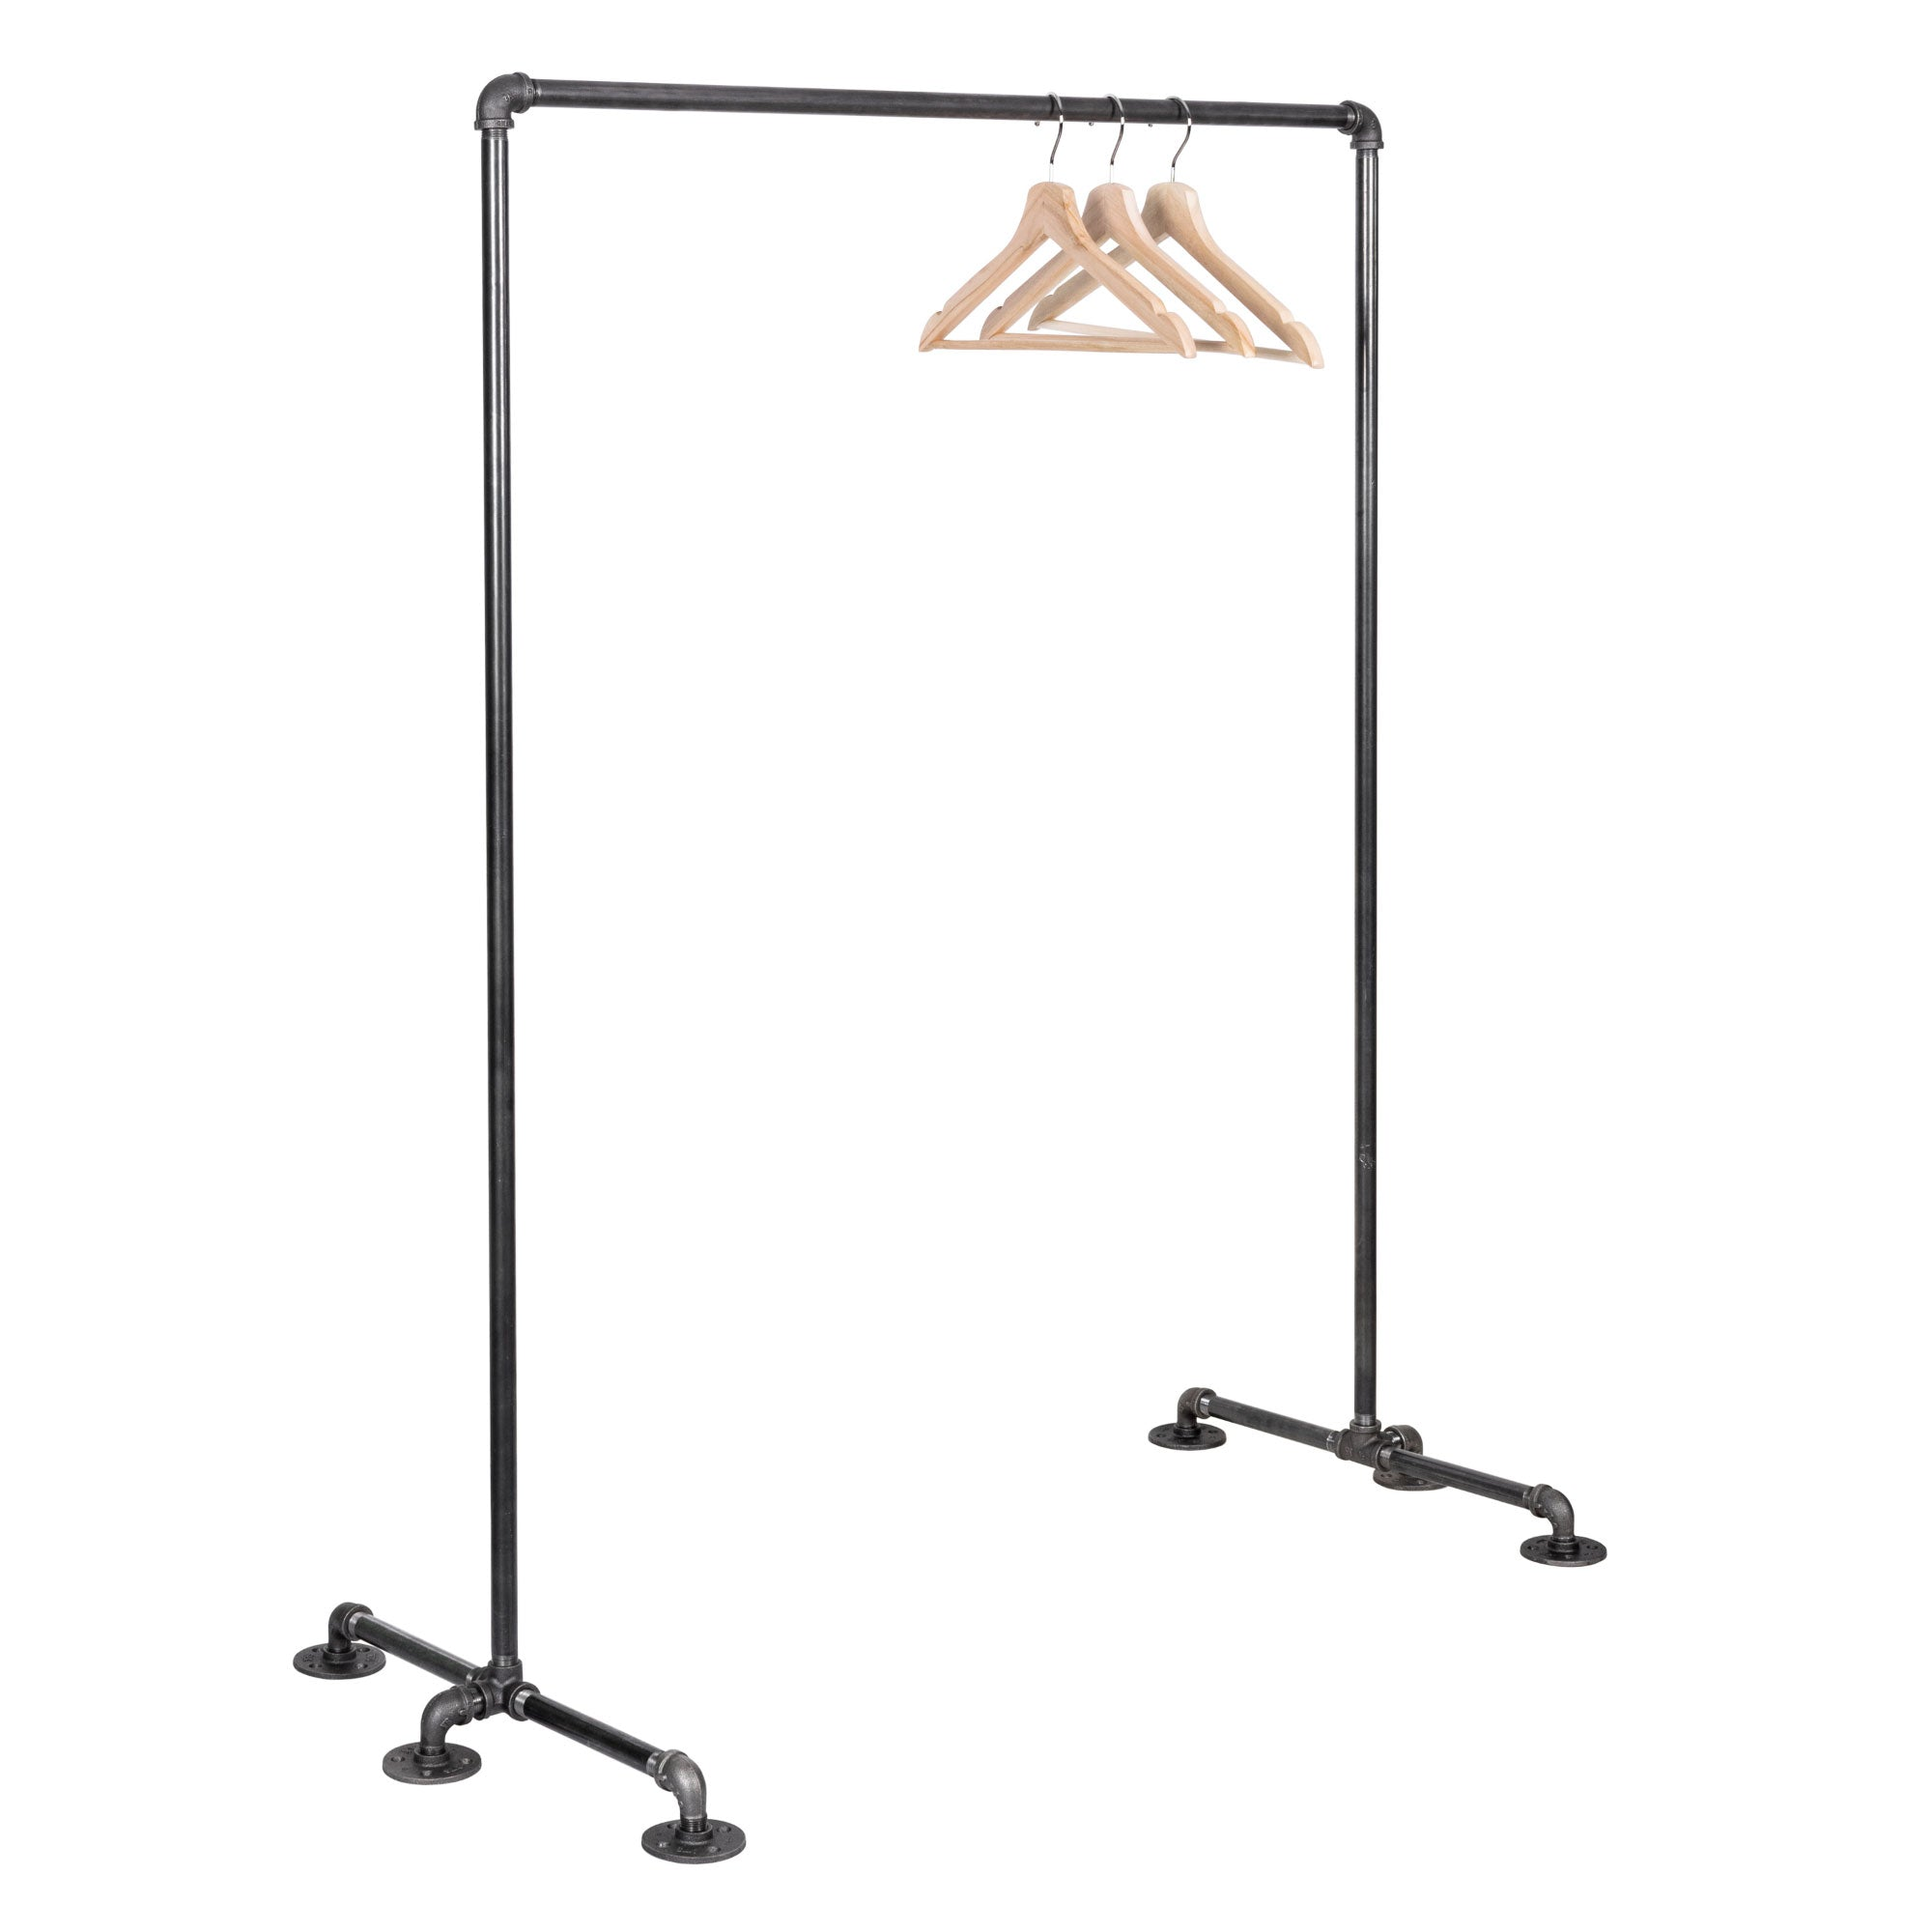 Freestanding Clothing Rack By PIPE DECOR - Pipe Decor